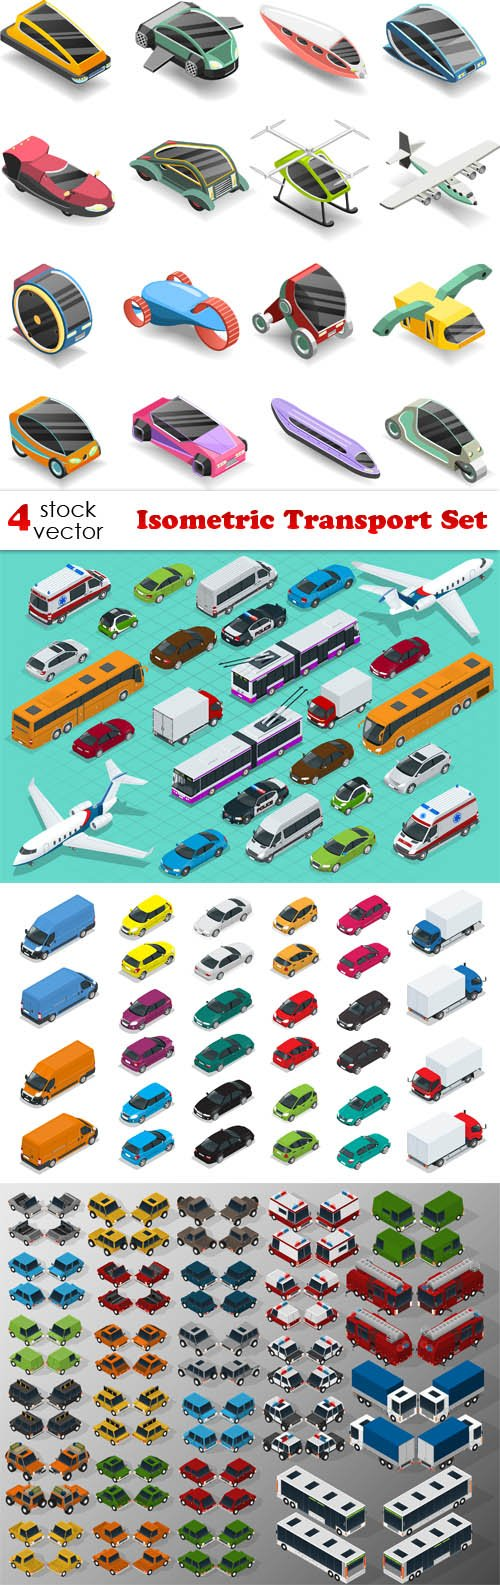 Vectors - Isometric Transport Set